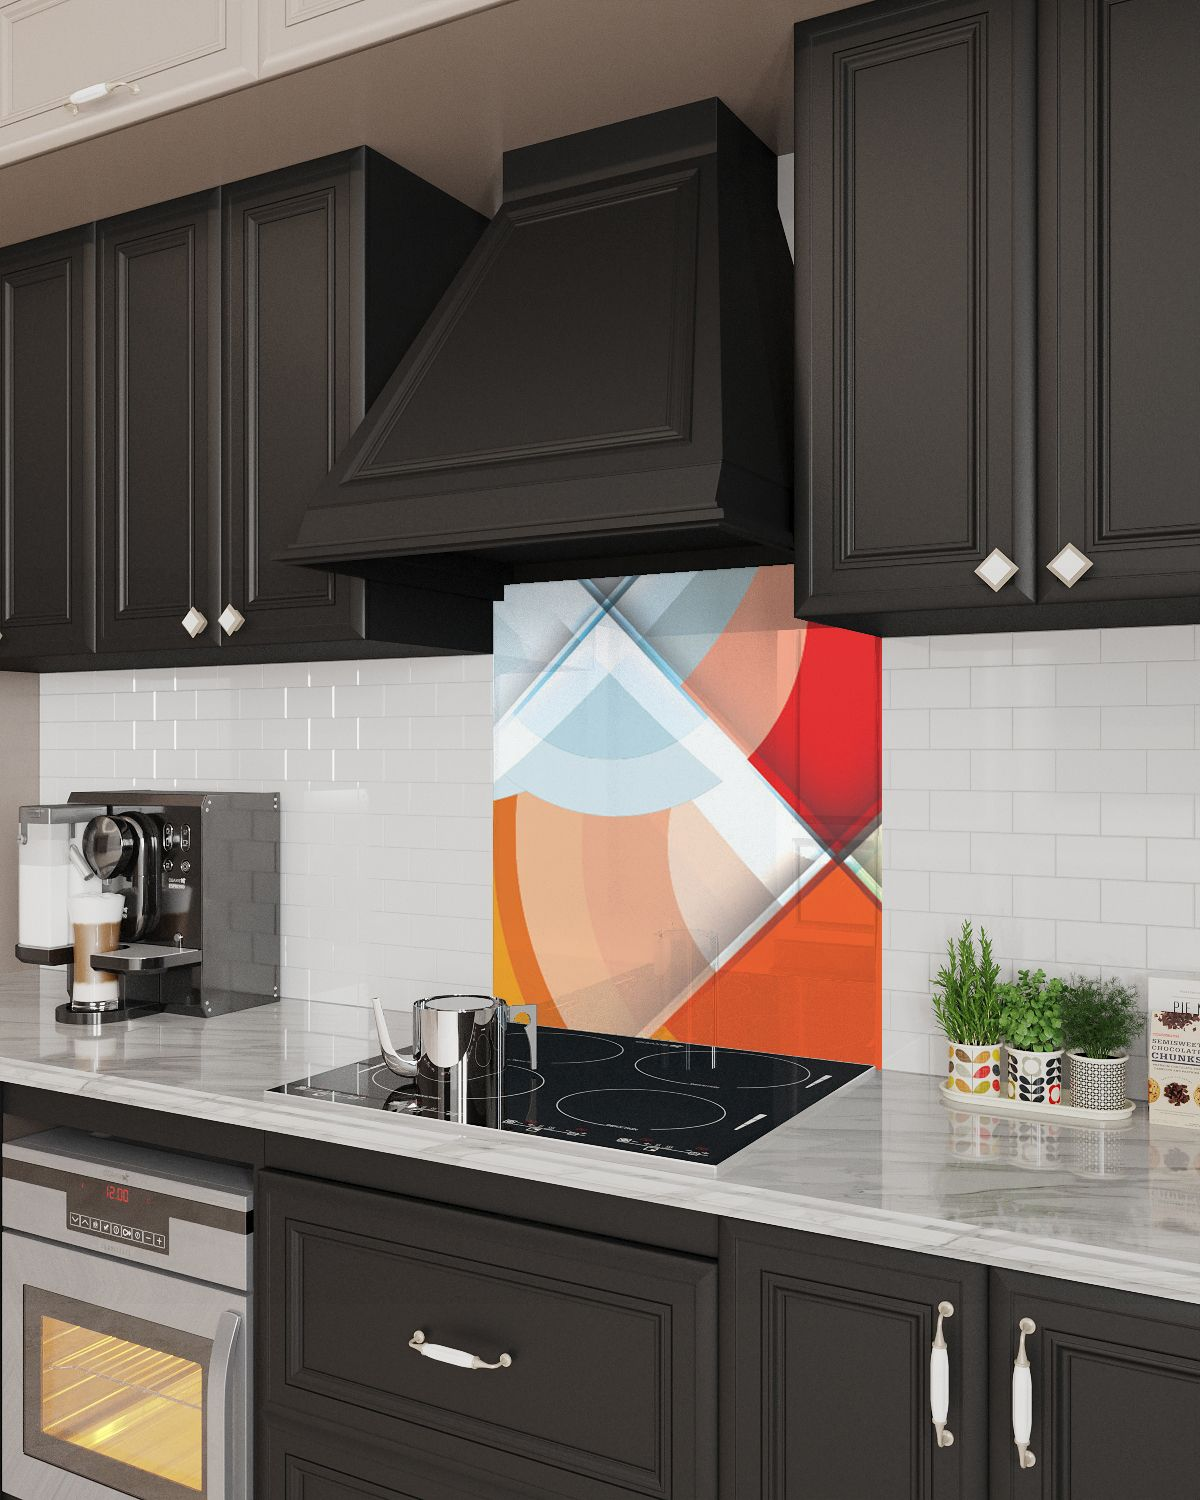 Glass Backsplash Abstract Colorful Circles In 2020 Glass Backsplash Kitchen Design Backsplash